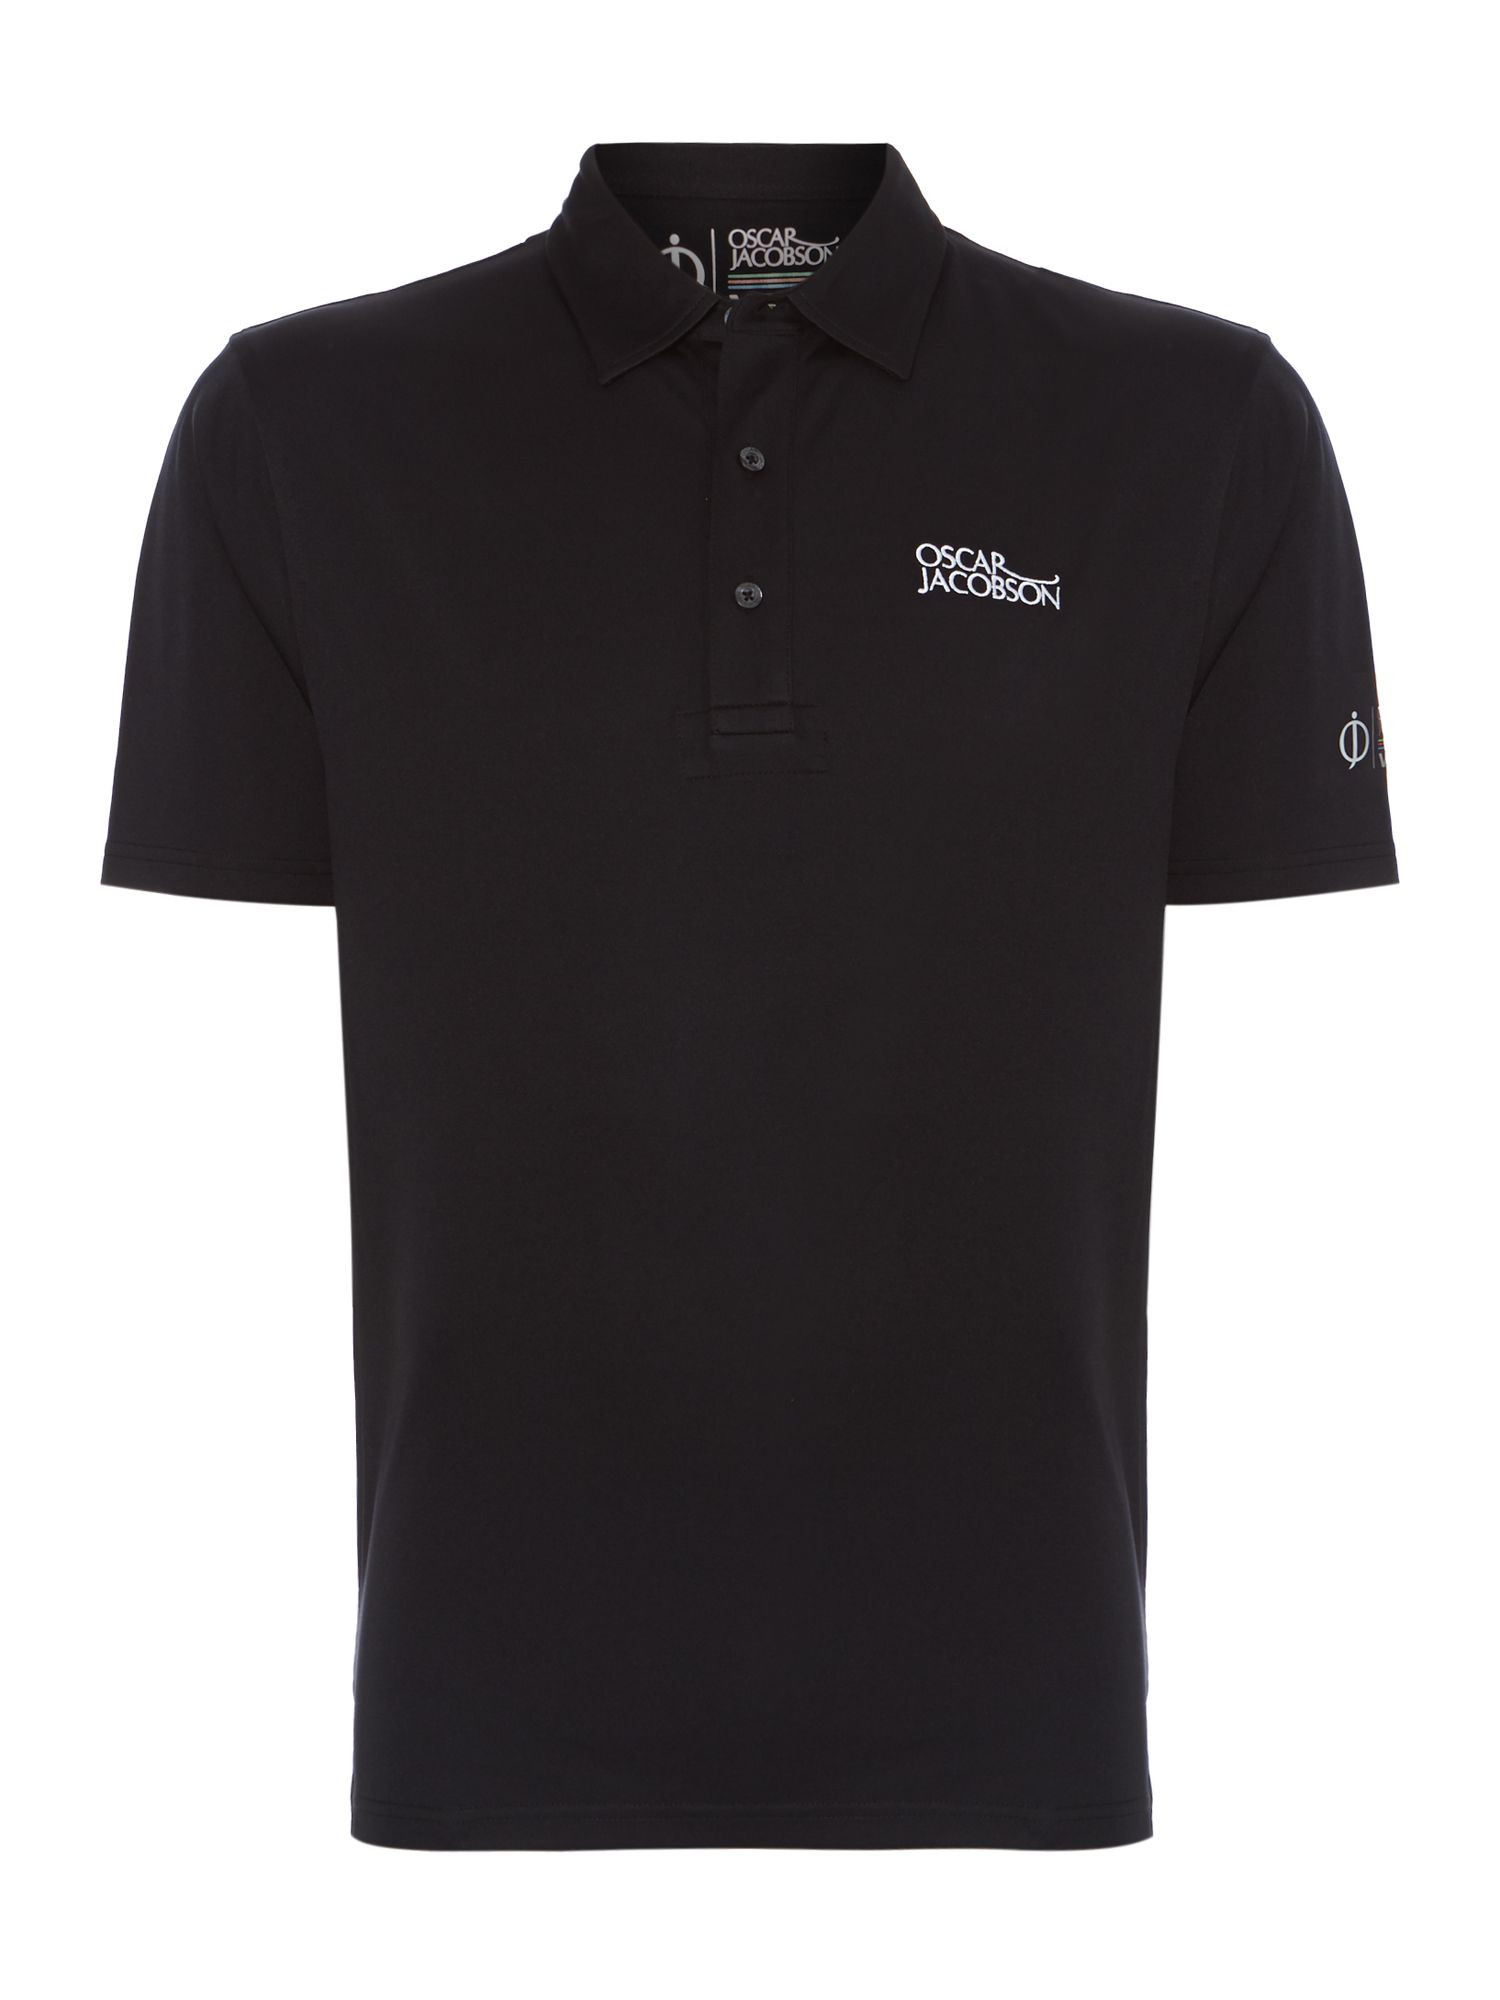 Men's Oscar Jacobson Collin Tour Polo, Black